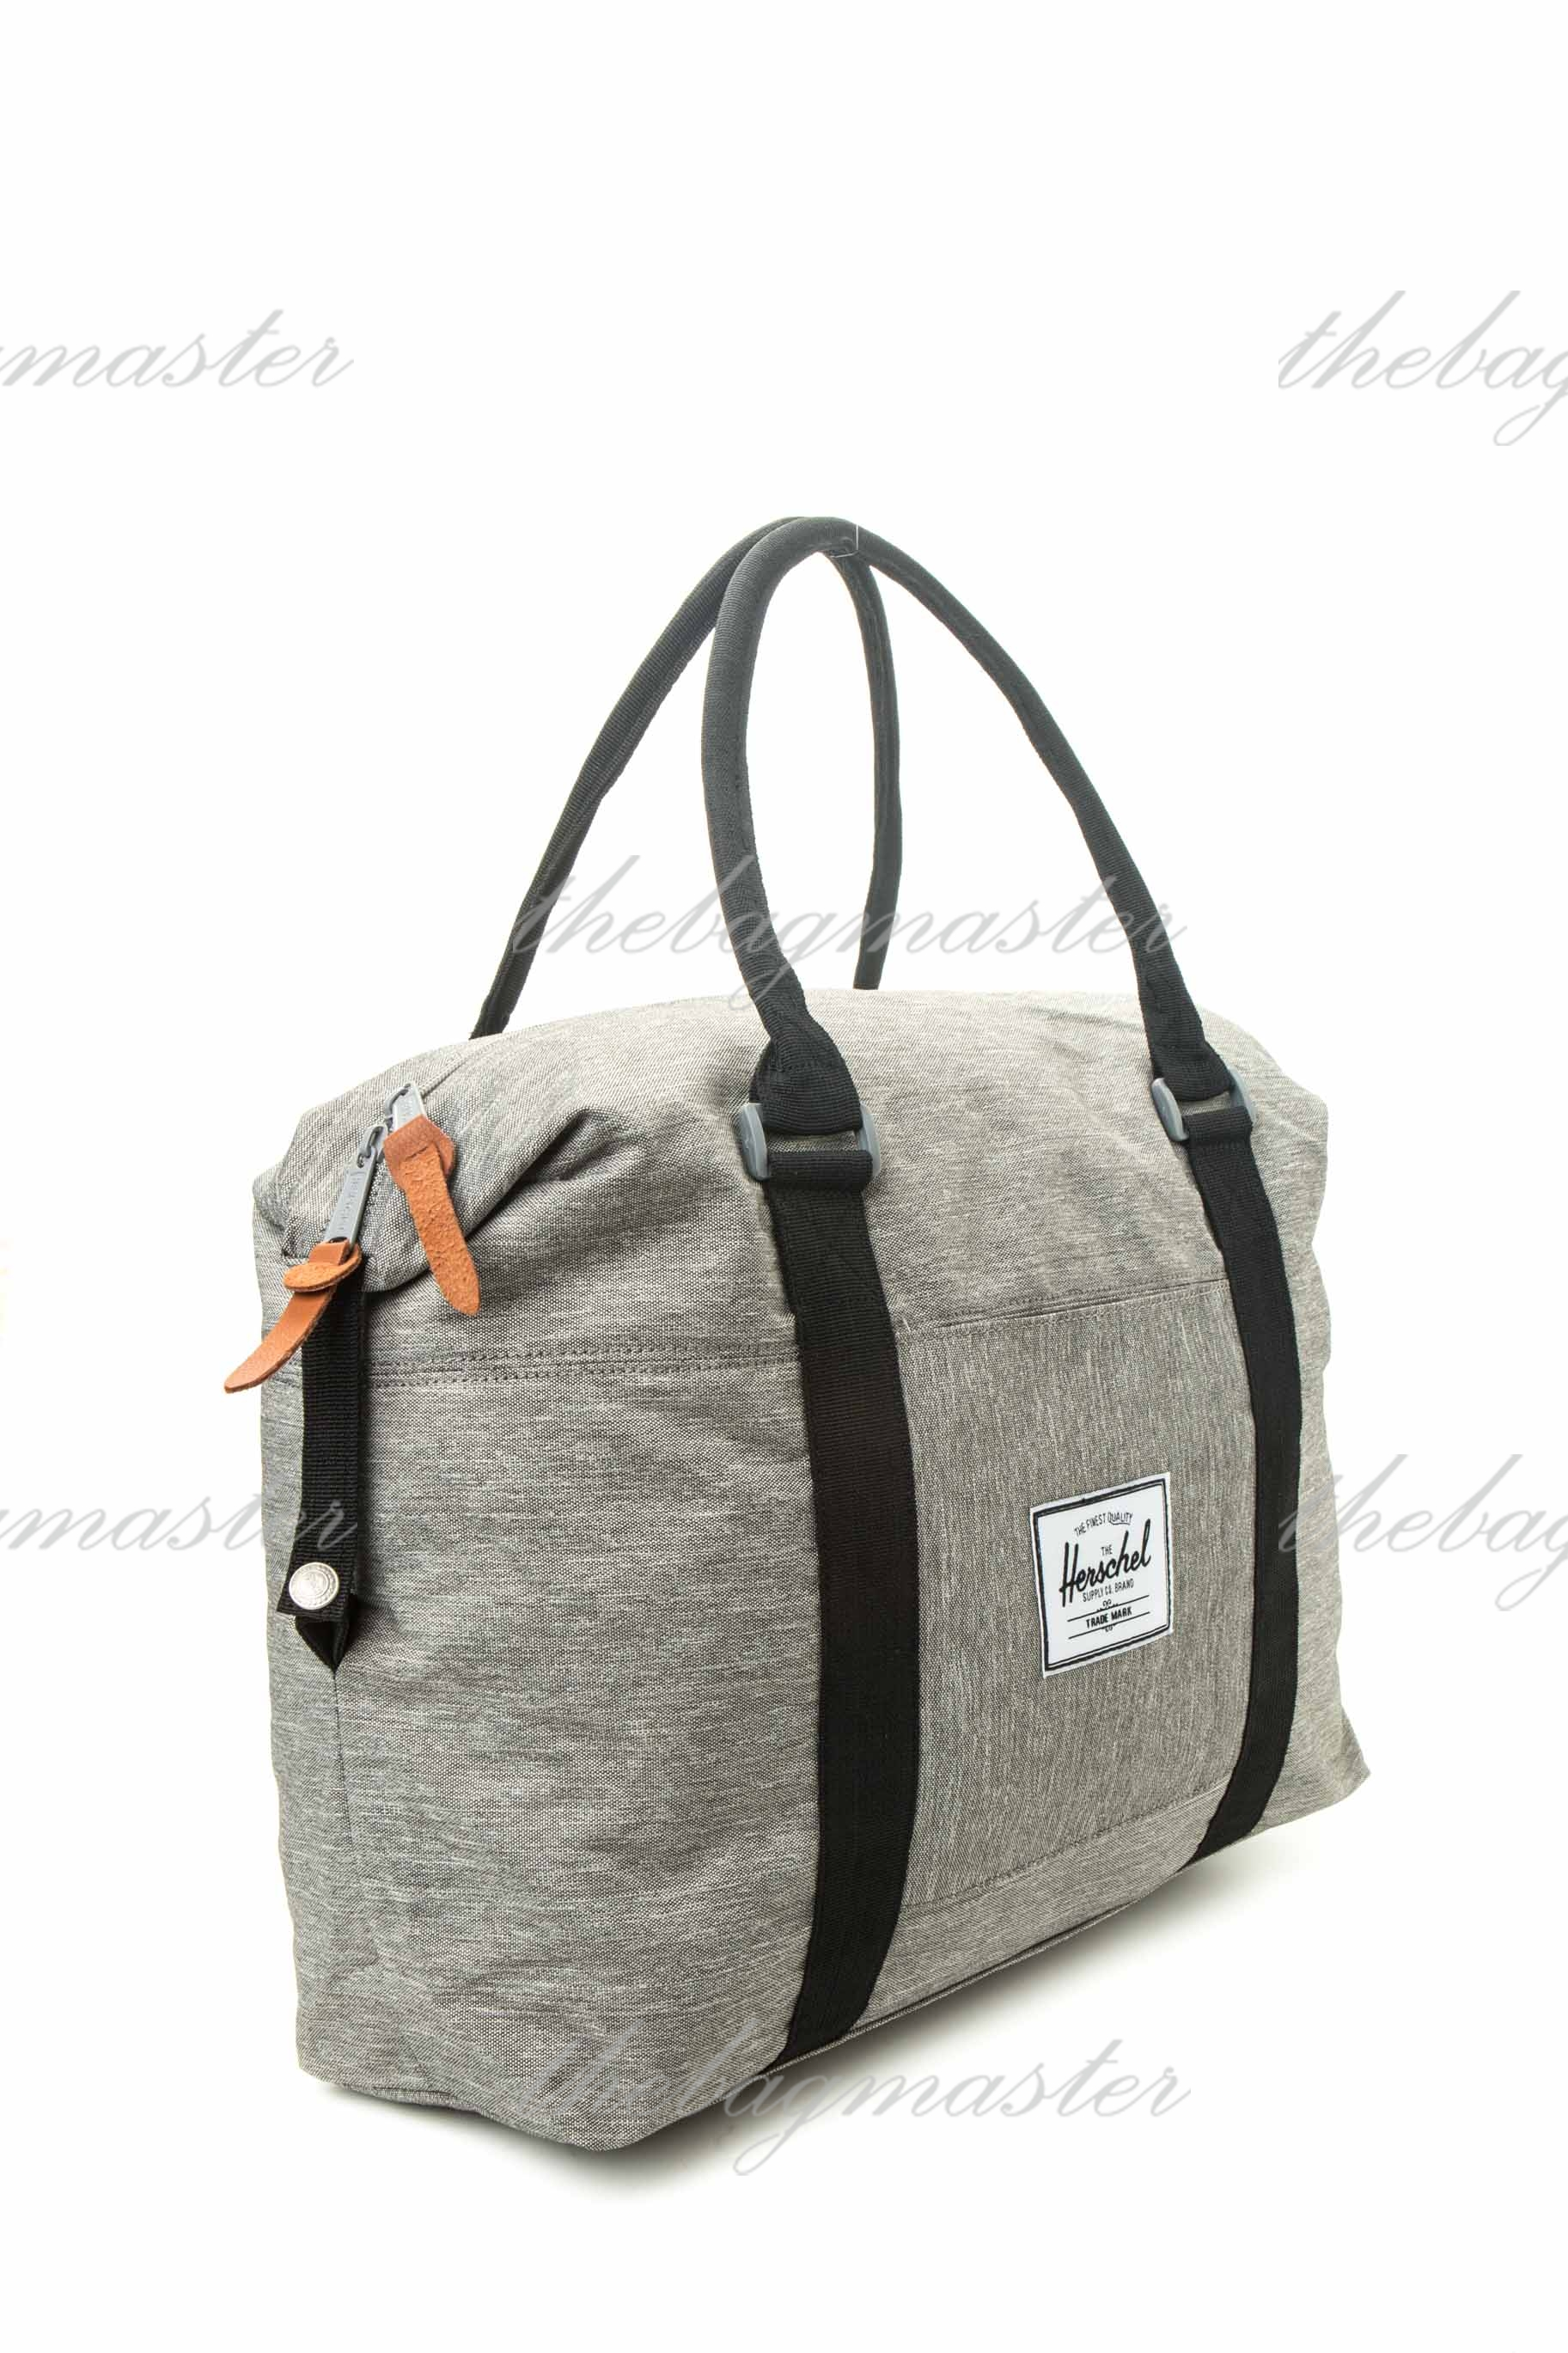 Herschel Duffle Bag | Herschel Weekender Bag | Herchel Supply Co